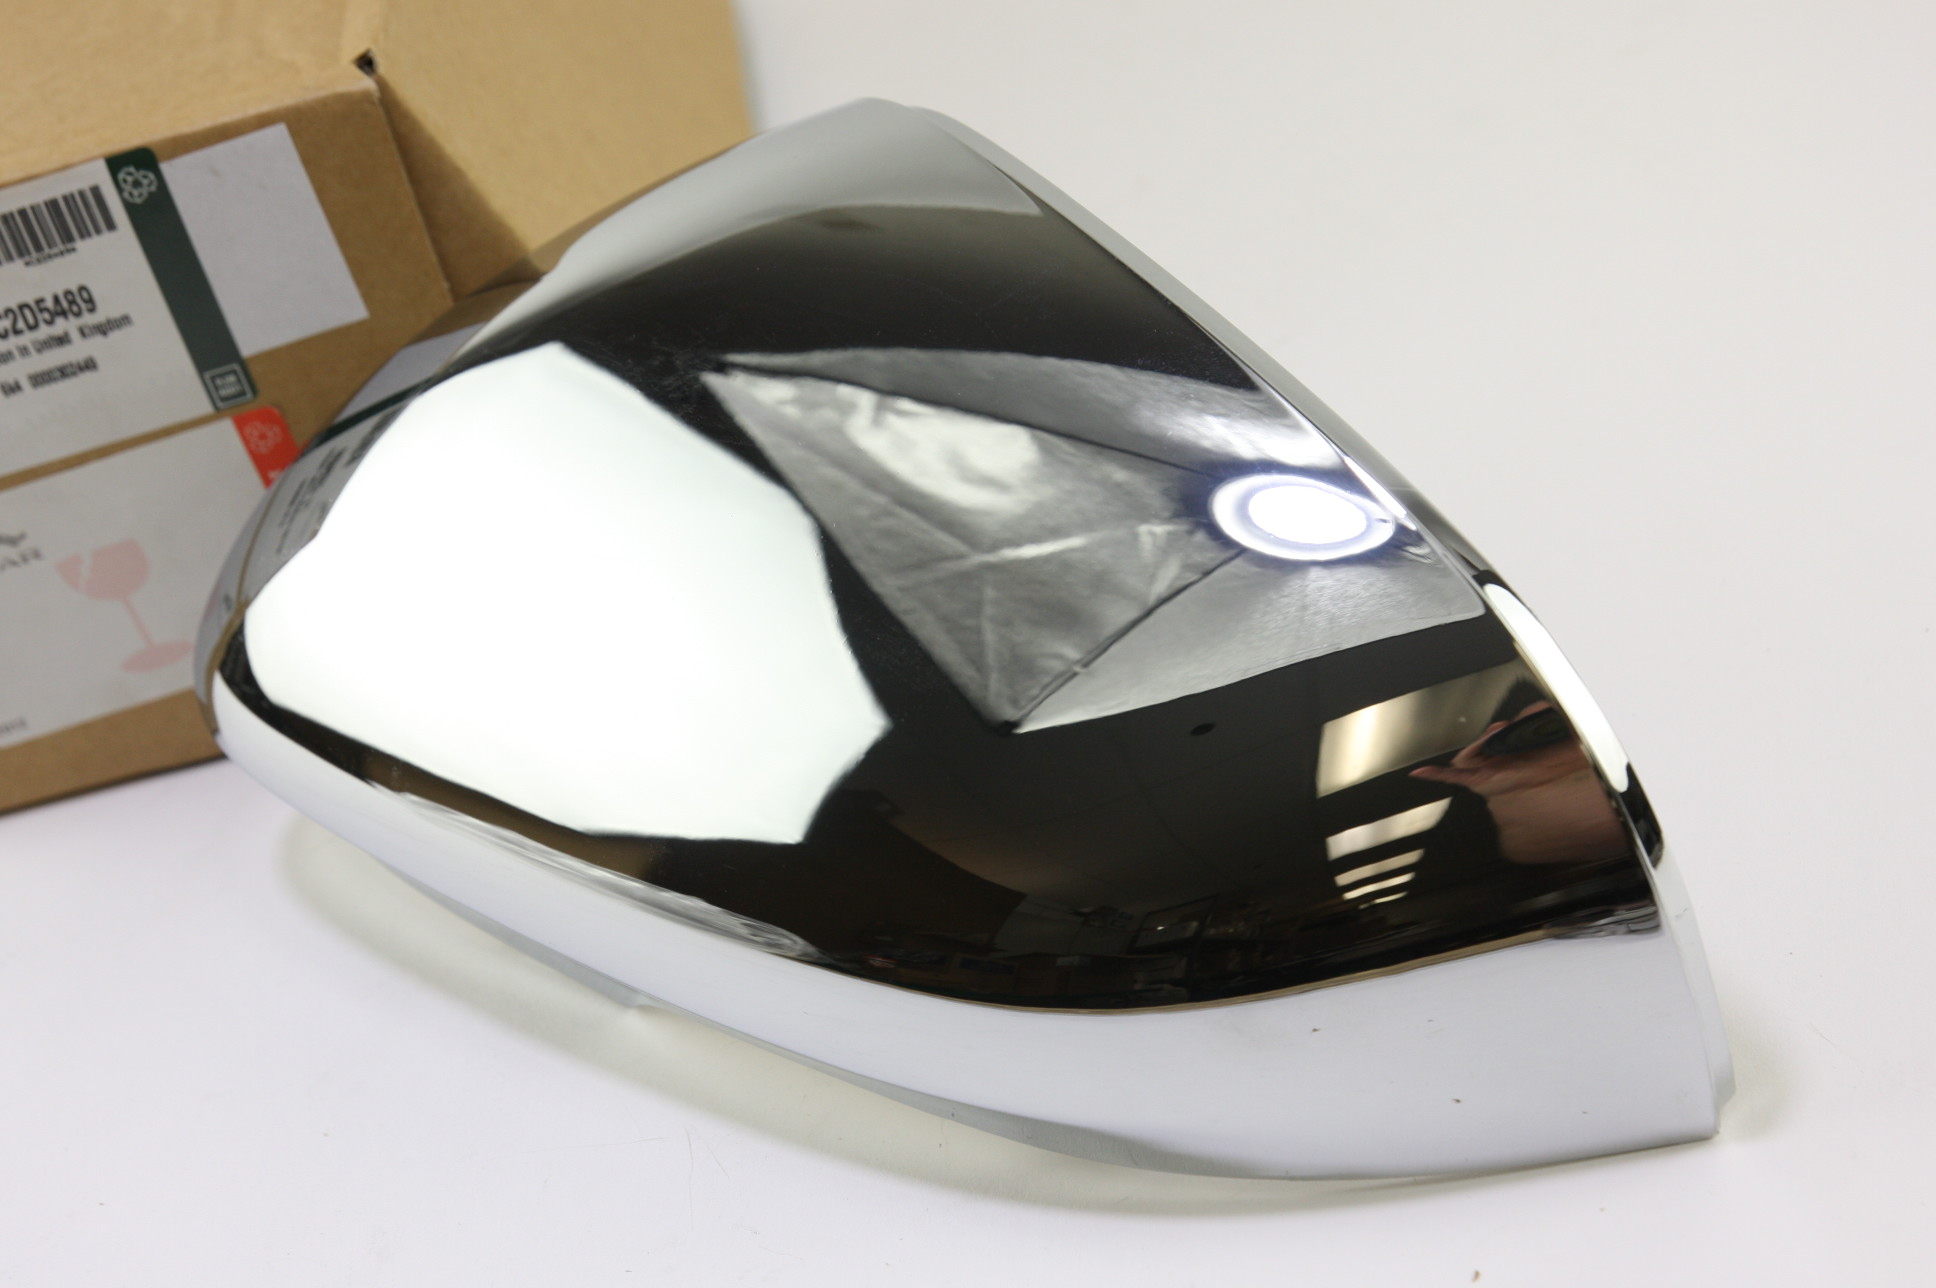 * New OEM C2D5489 Genuine Jaguar Driver Left Side Door Mirror Back Cover Chrome - image 3